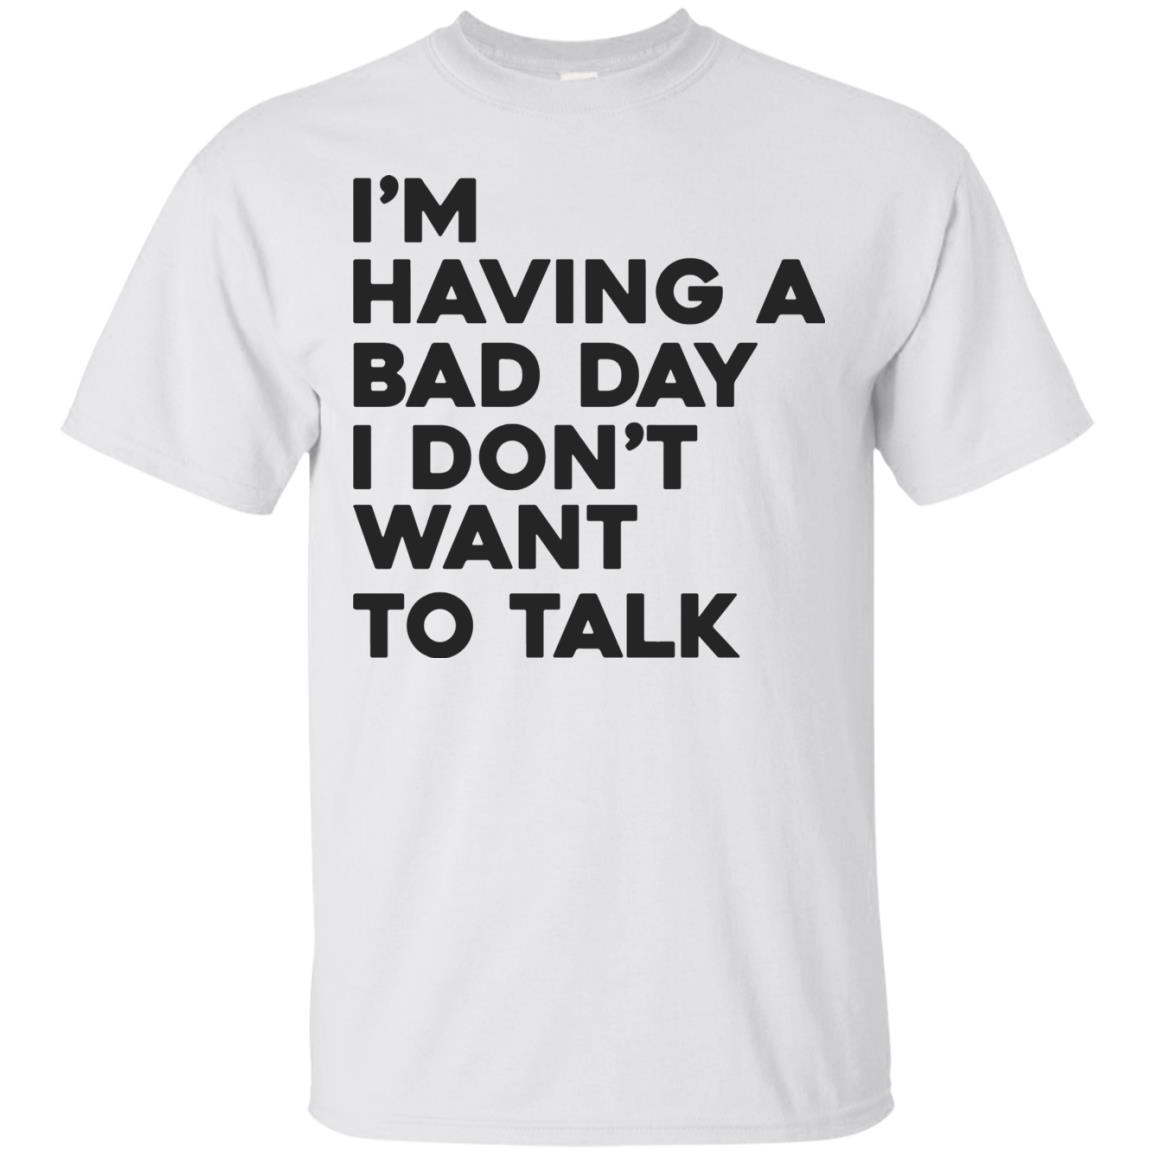 image 236px I'm having a bad day I don't want to talk t shirt, hoodies, tank